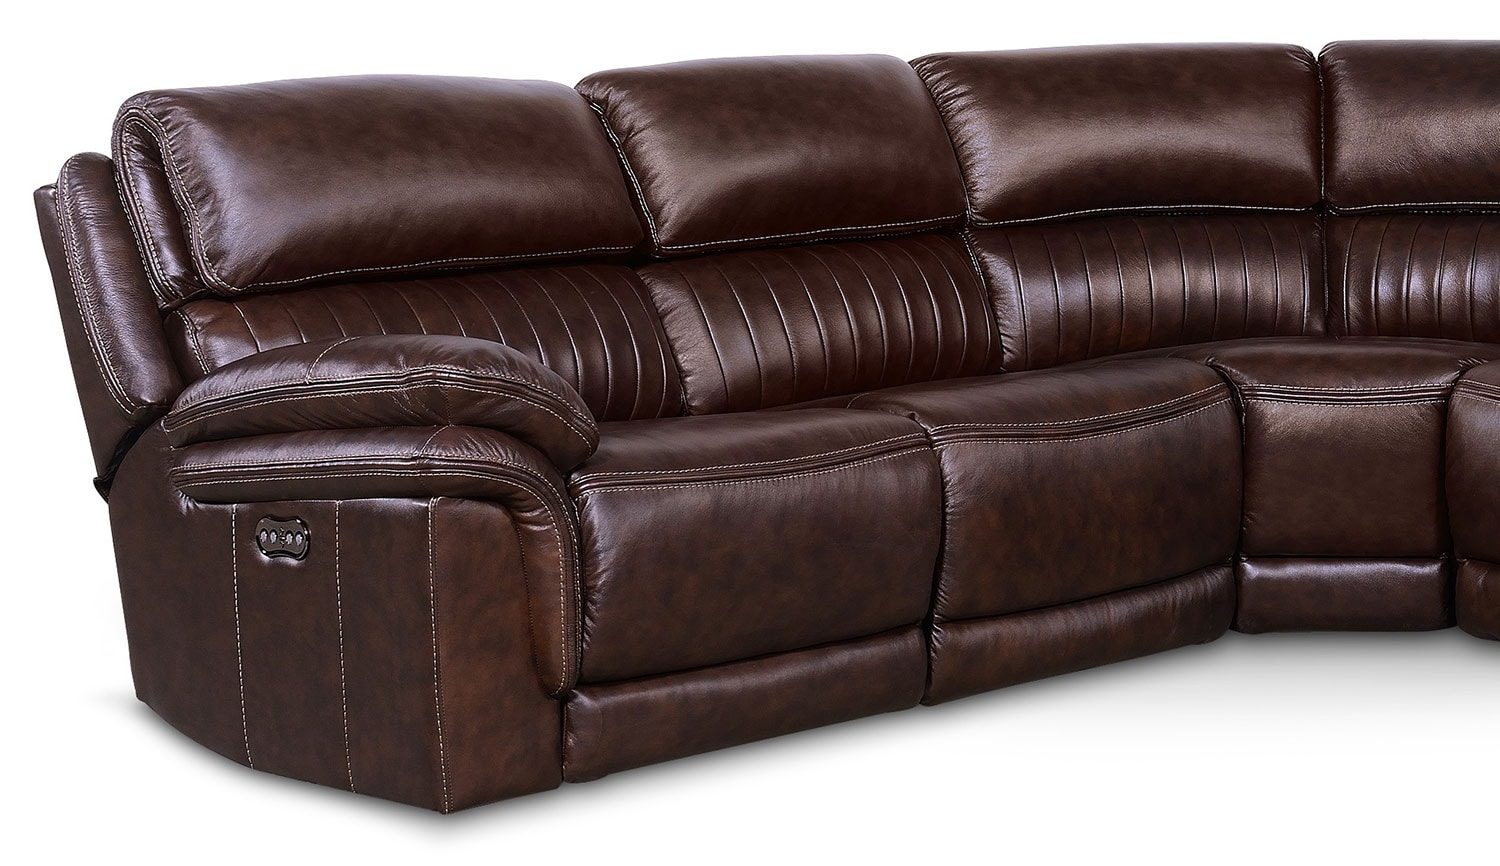 Monterey 5 Piece Power Reclining Sectional With 3 Reclining Seats